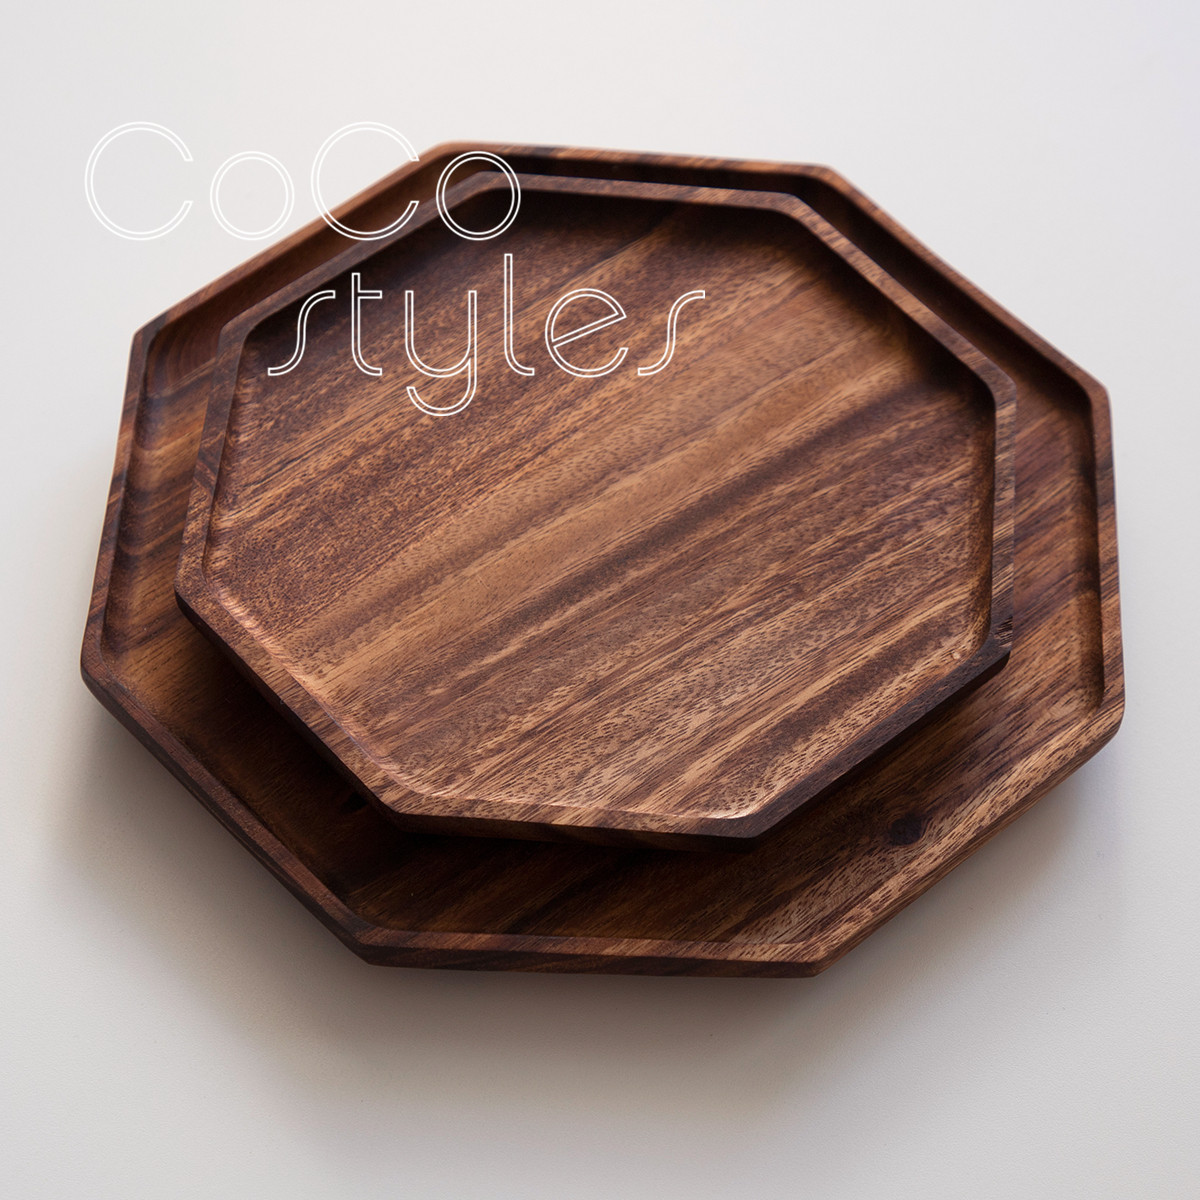 Cocostyles vintage japanese octagon wooden plate for home decor and super september